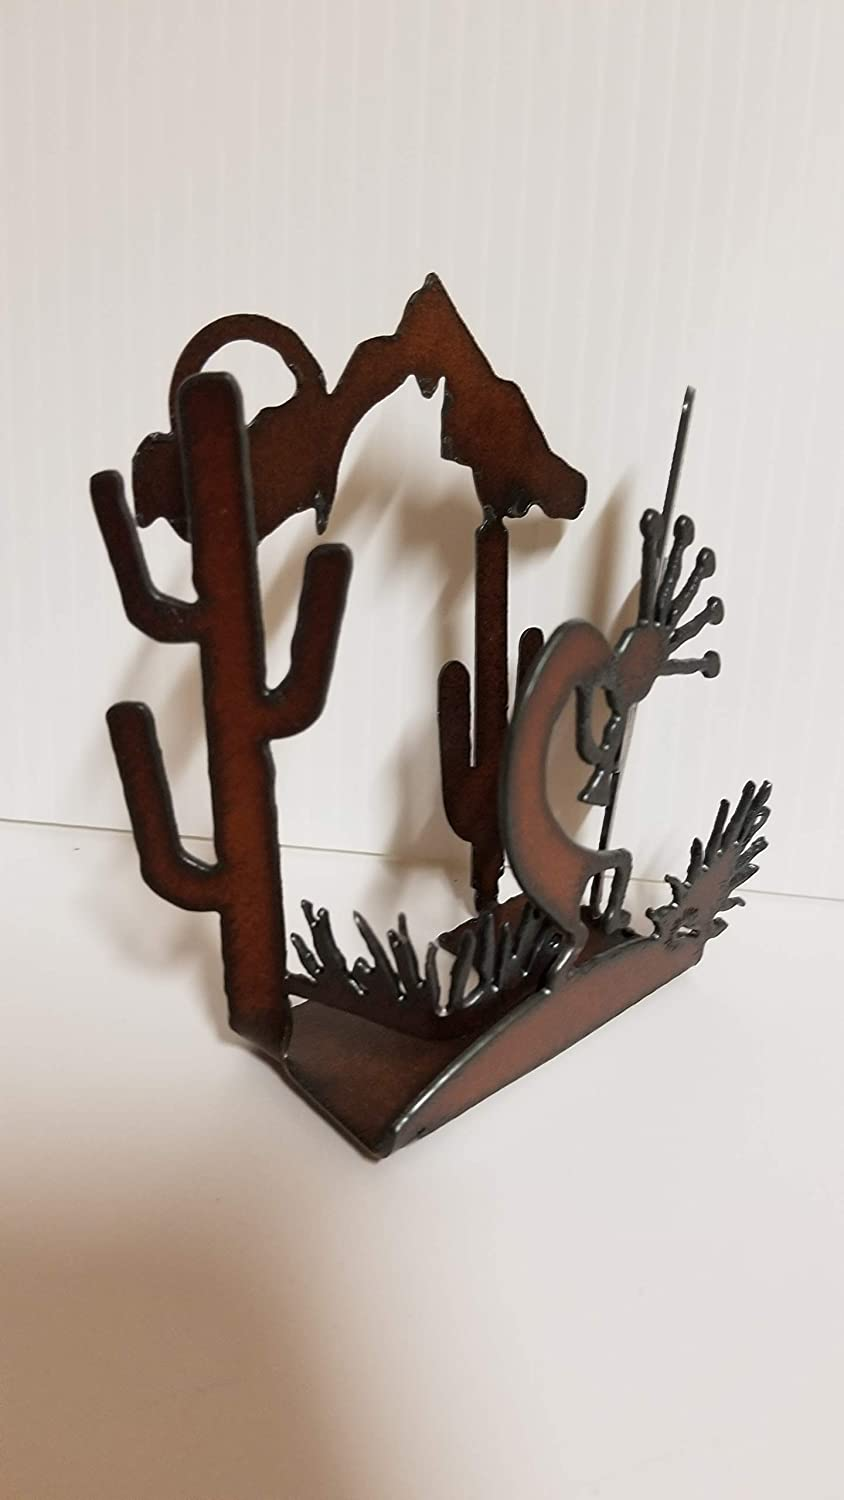 Kokopelli Night Light Made out of Rusted Steel